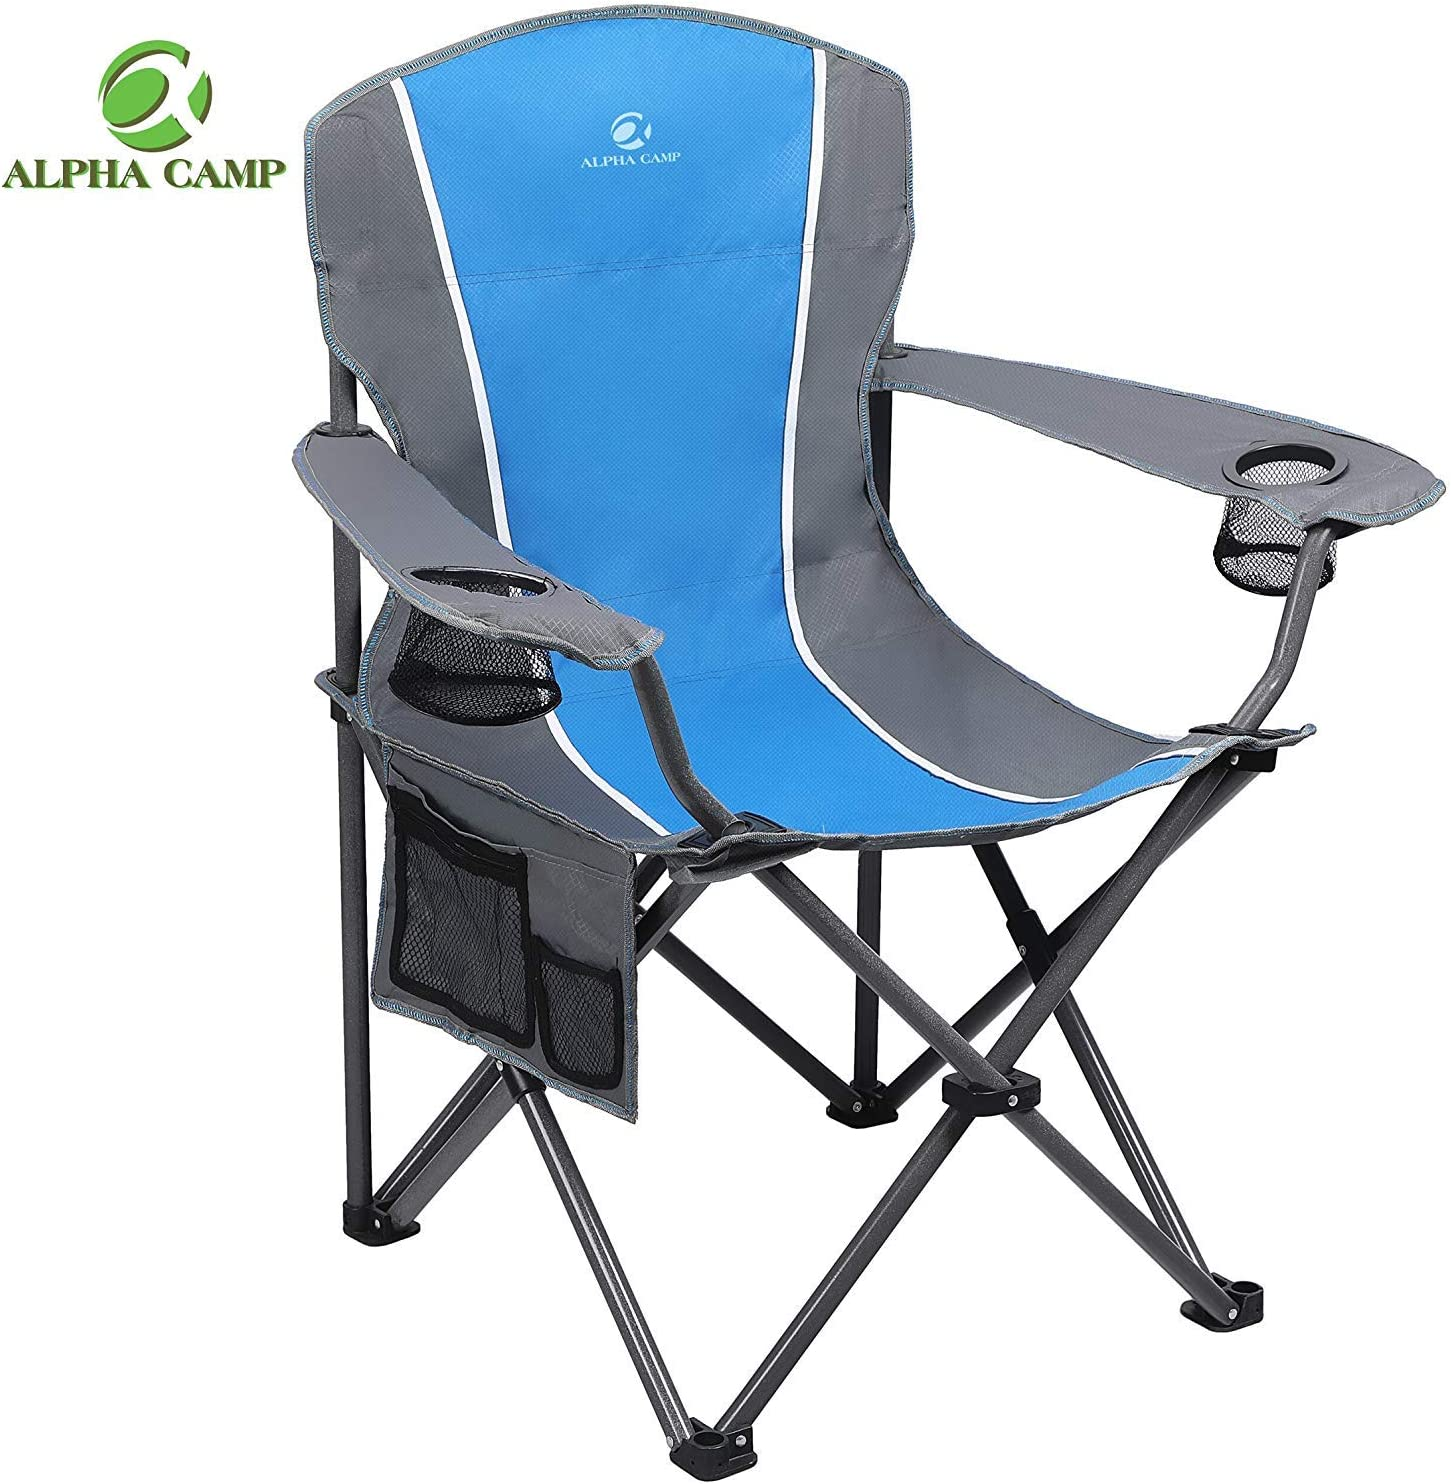 ALPHA CAMP Folding Camping Chair Heavy Duty Support 350 LBS Oversized Steel Frame Collapsible Padded Arm Chair with Cup Holder Quad Lumbar Back Chair Portable for Outdoor, Blue/Gray